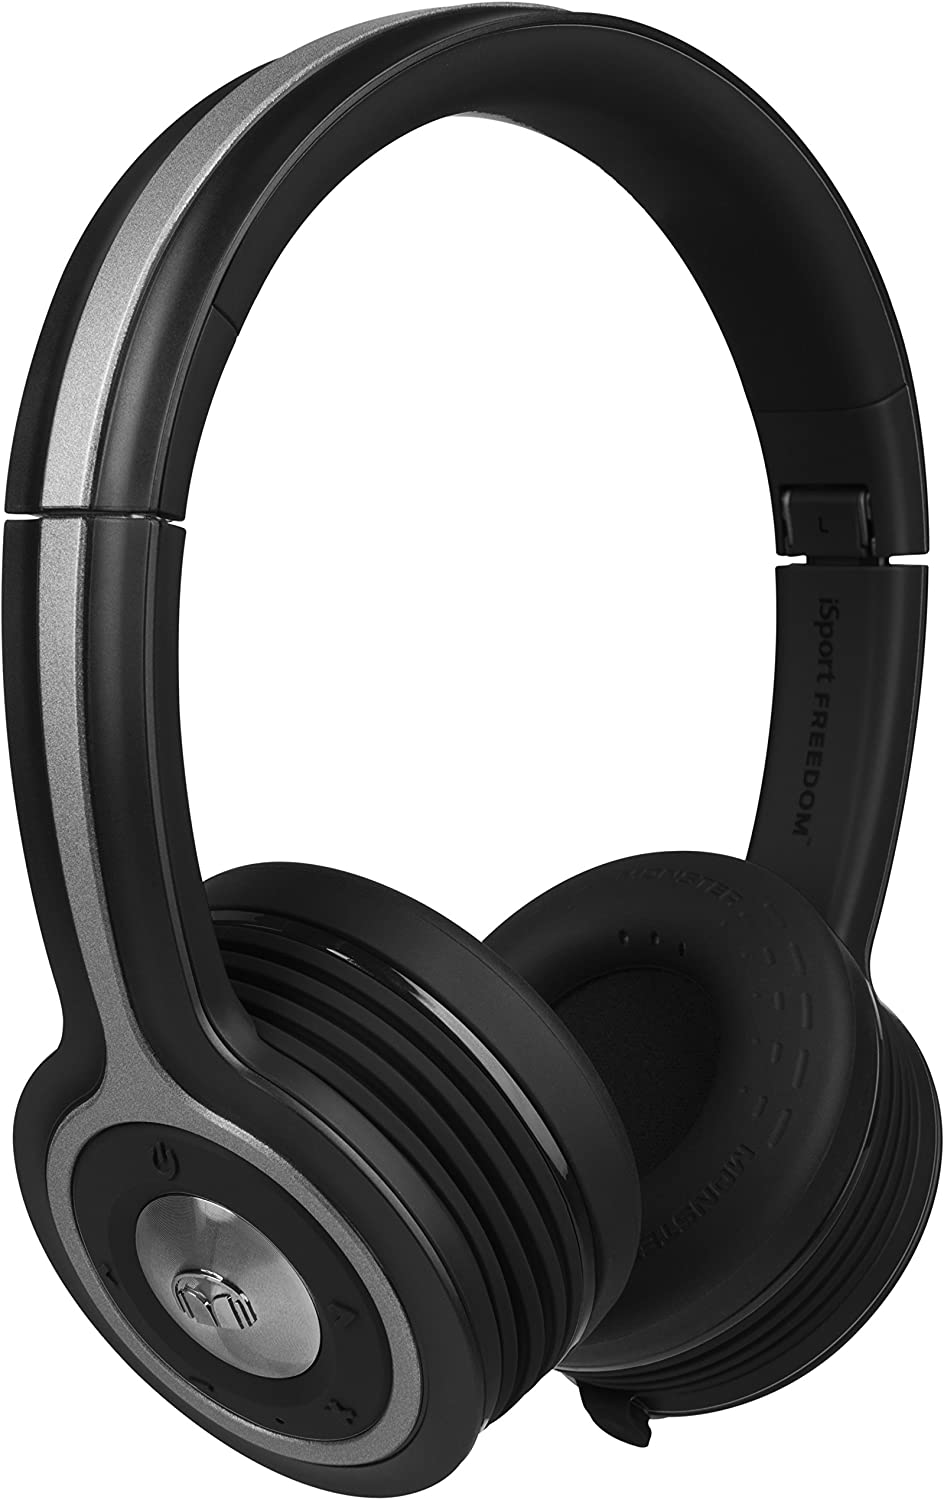 Monster iSport Freedom Bluetooth Wireless On-Ear Headphones - Black, High definition On Ear Bluetooth Headphones